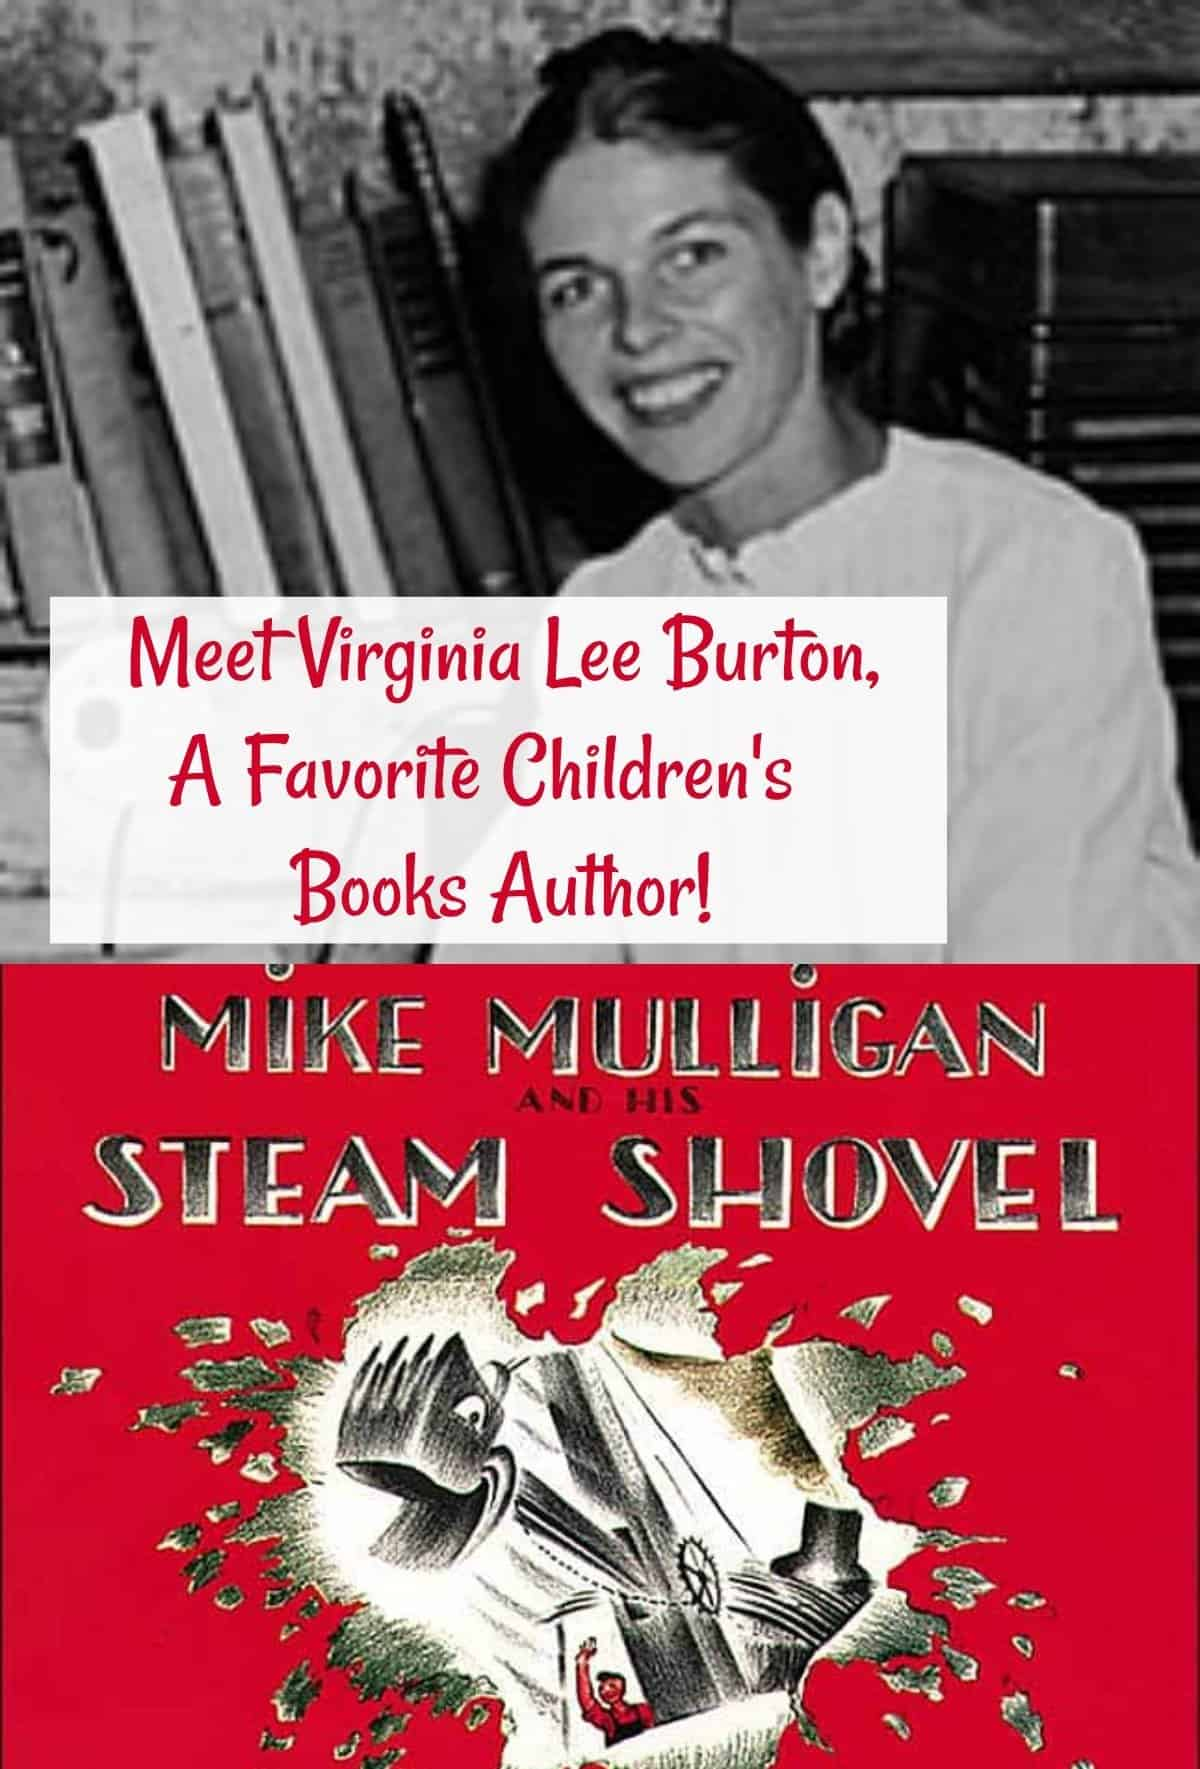 Meet Virginia Lee Burton, A Favorite Children's Books Author. Virginia Lee Burton and her book Mike Mulligan and His Steam Engine. Caldecott Medal-winning author,